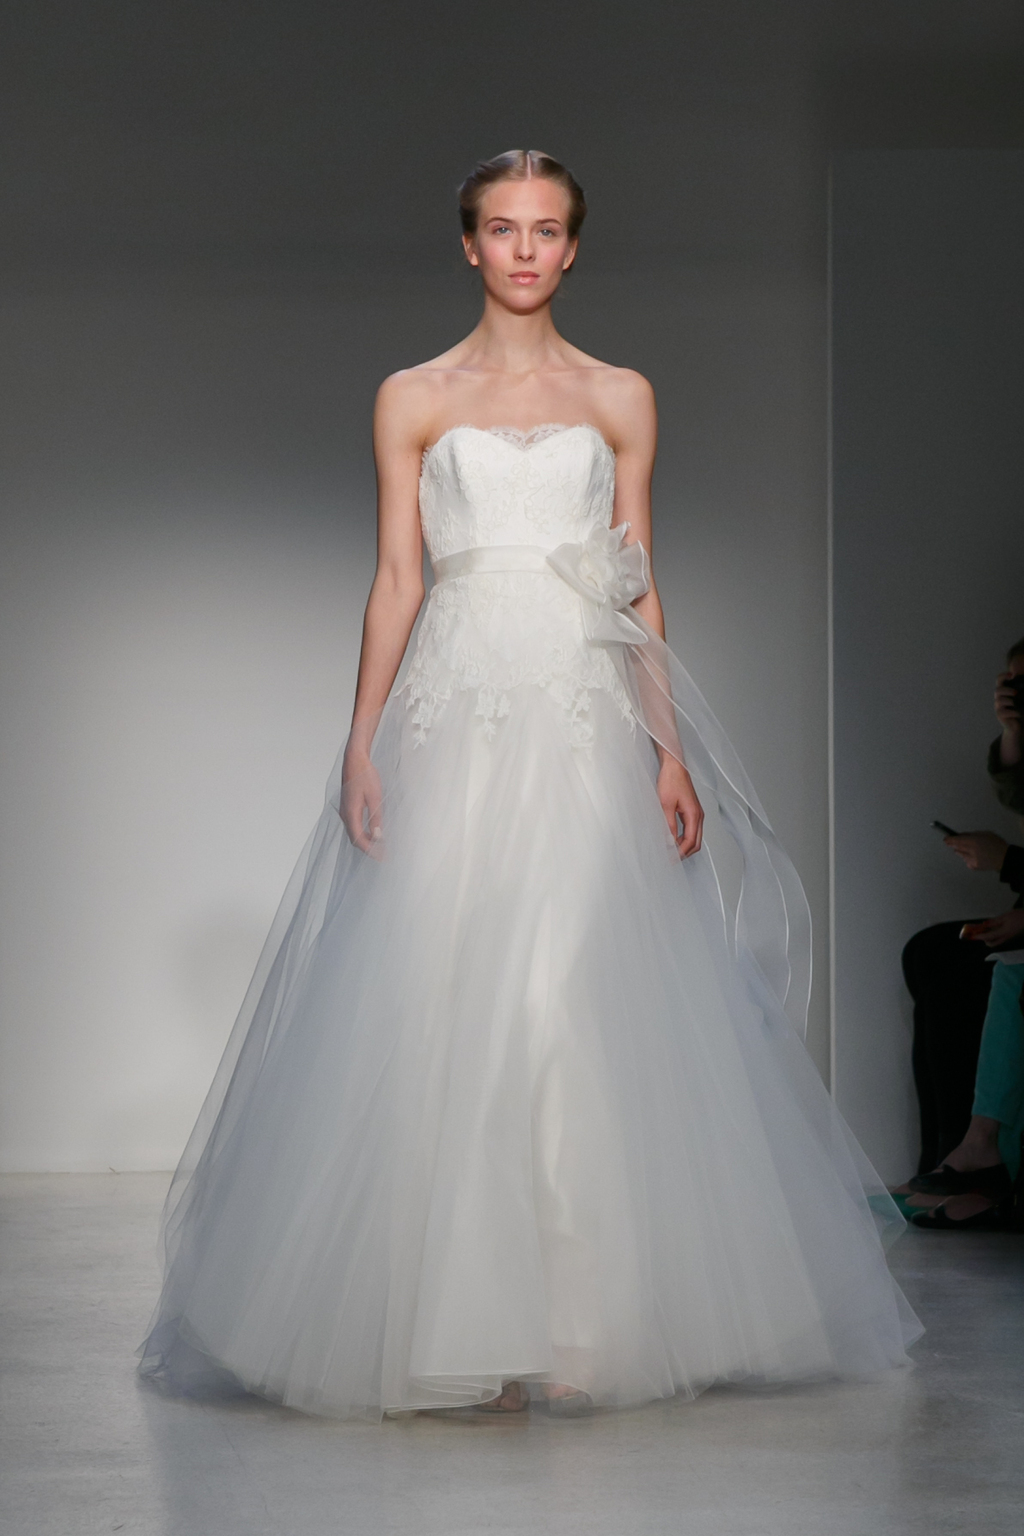 Fall-2013-wedding-dress-by-christos-amsale-bridal-5.full